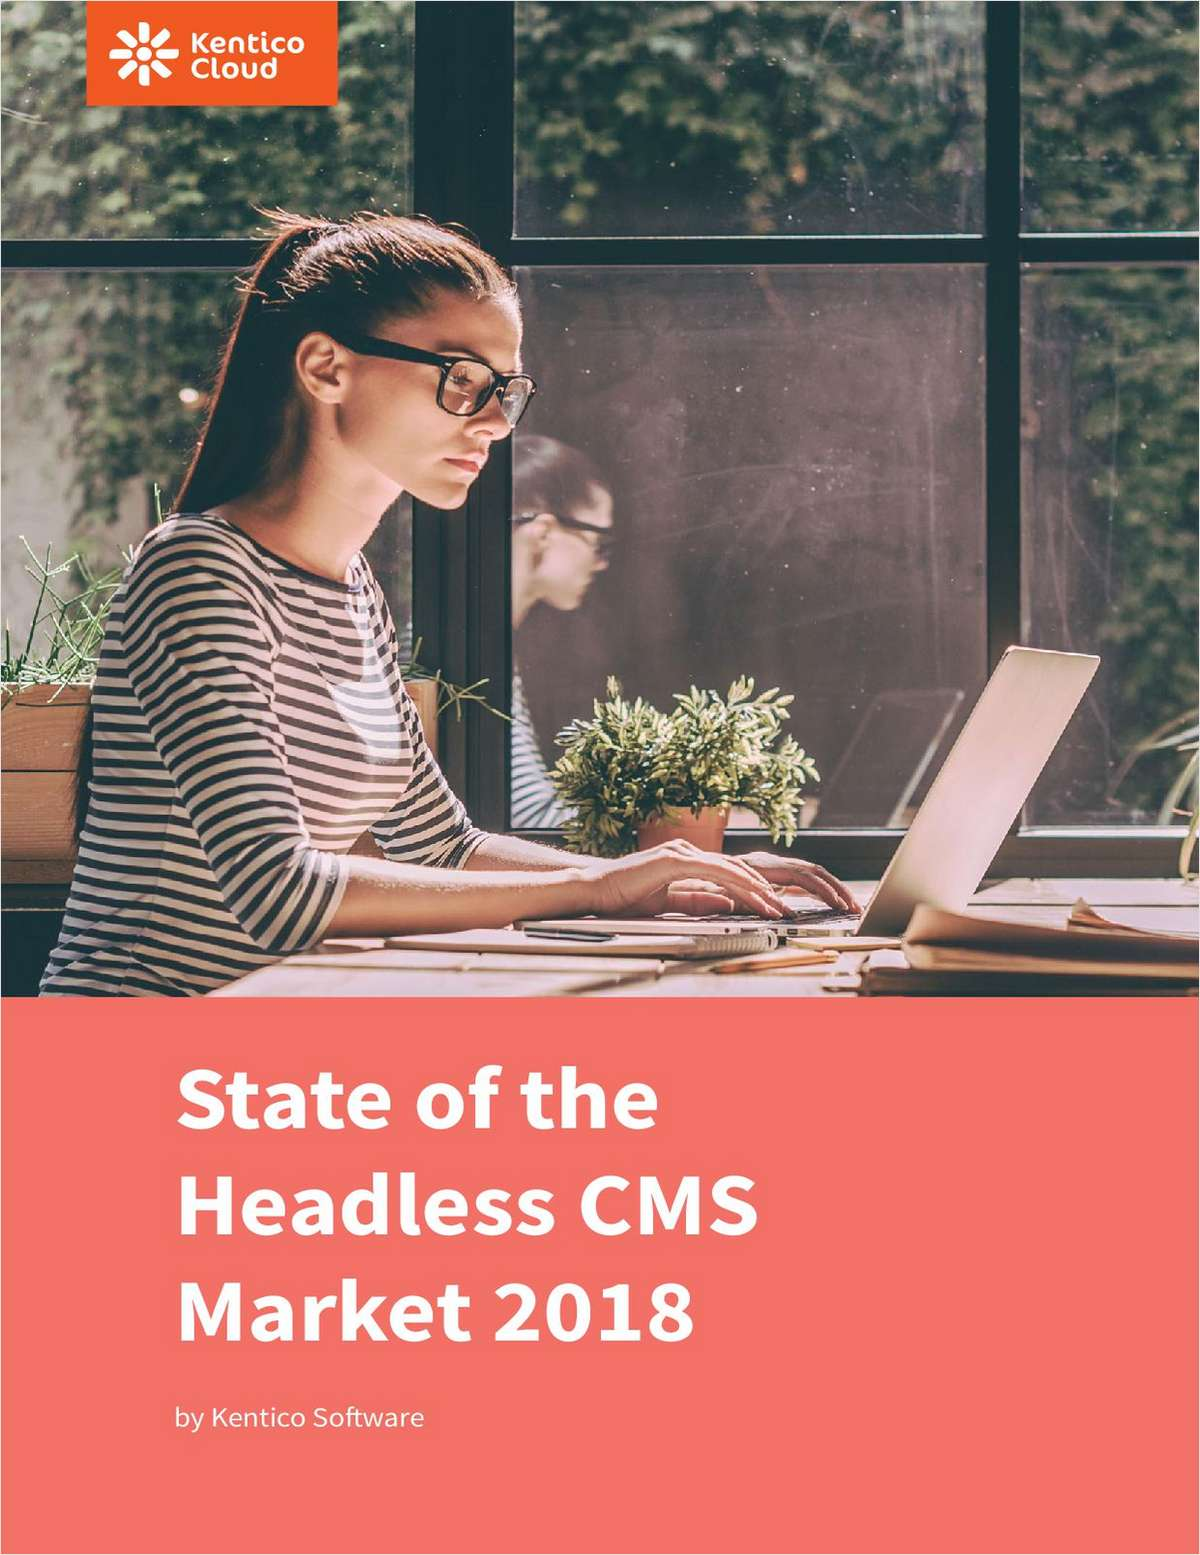 State of the Headless CMS Market 2018